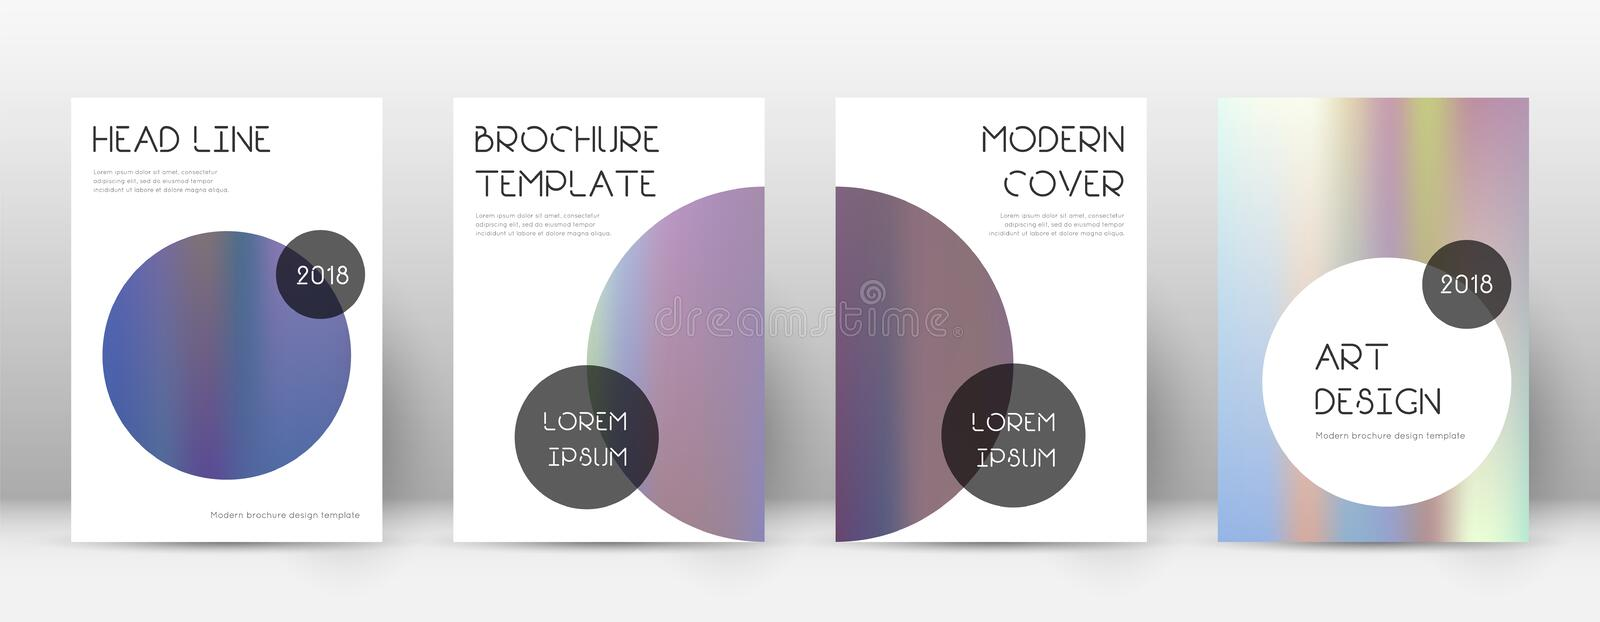 Flyer layout. Trendy classic template for Brochure, Annual Report, Magazine, Poster, Corporate Presentation, Portfolio, Flyer. Beauteous bright hologram cover vector illustration